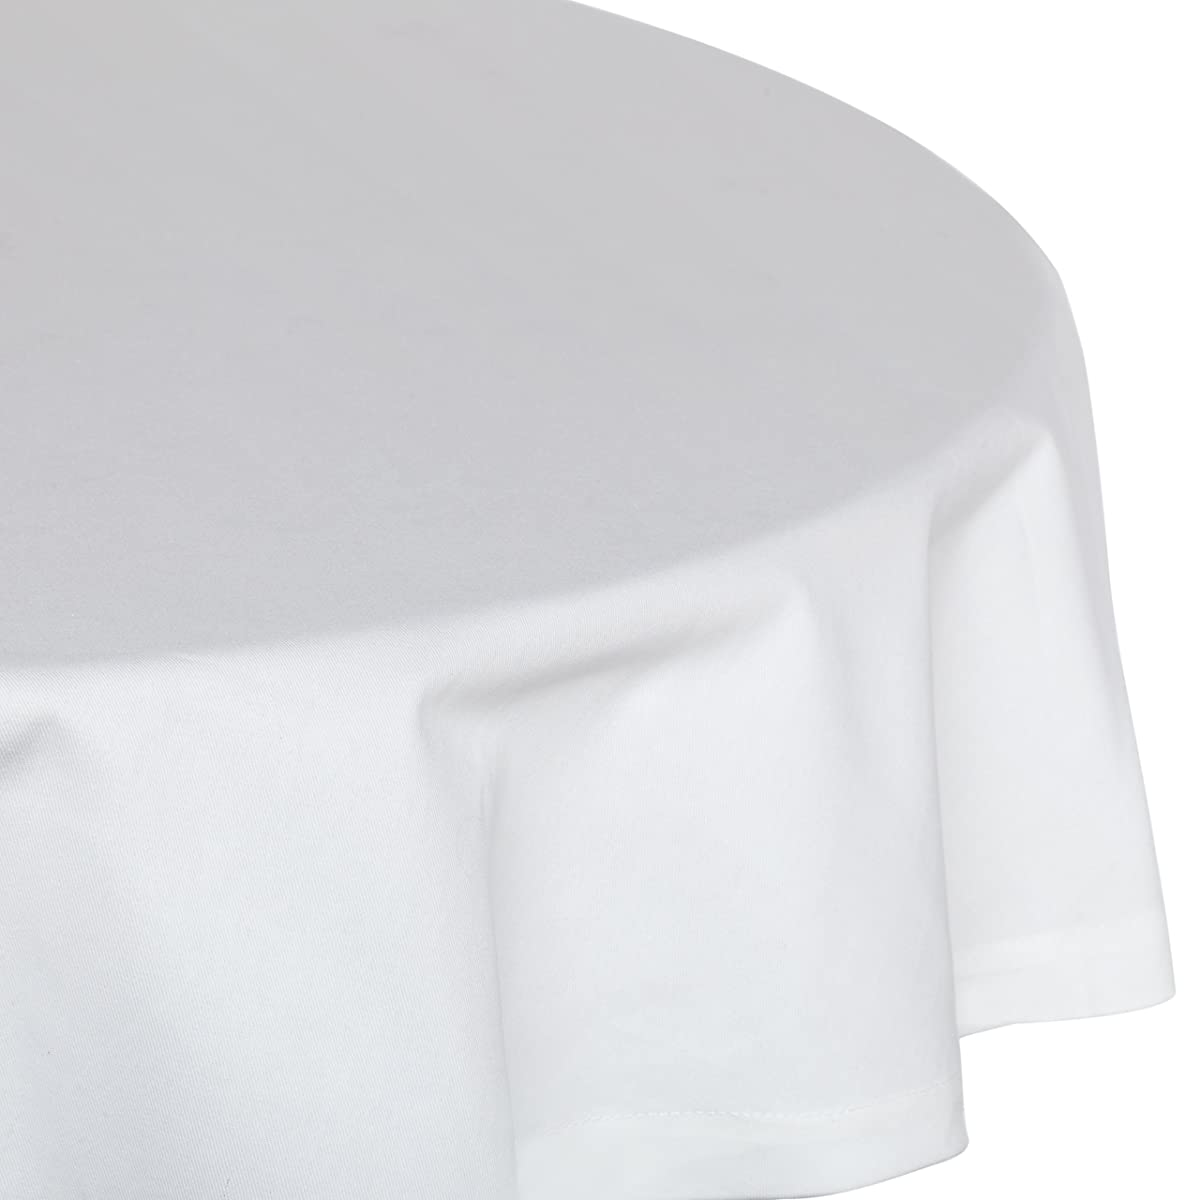 "KAF Home Buffet Tablecloth in White, 70"" Round, 100% Cotton, Machine Washable"